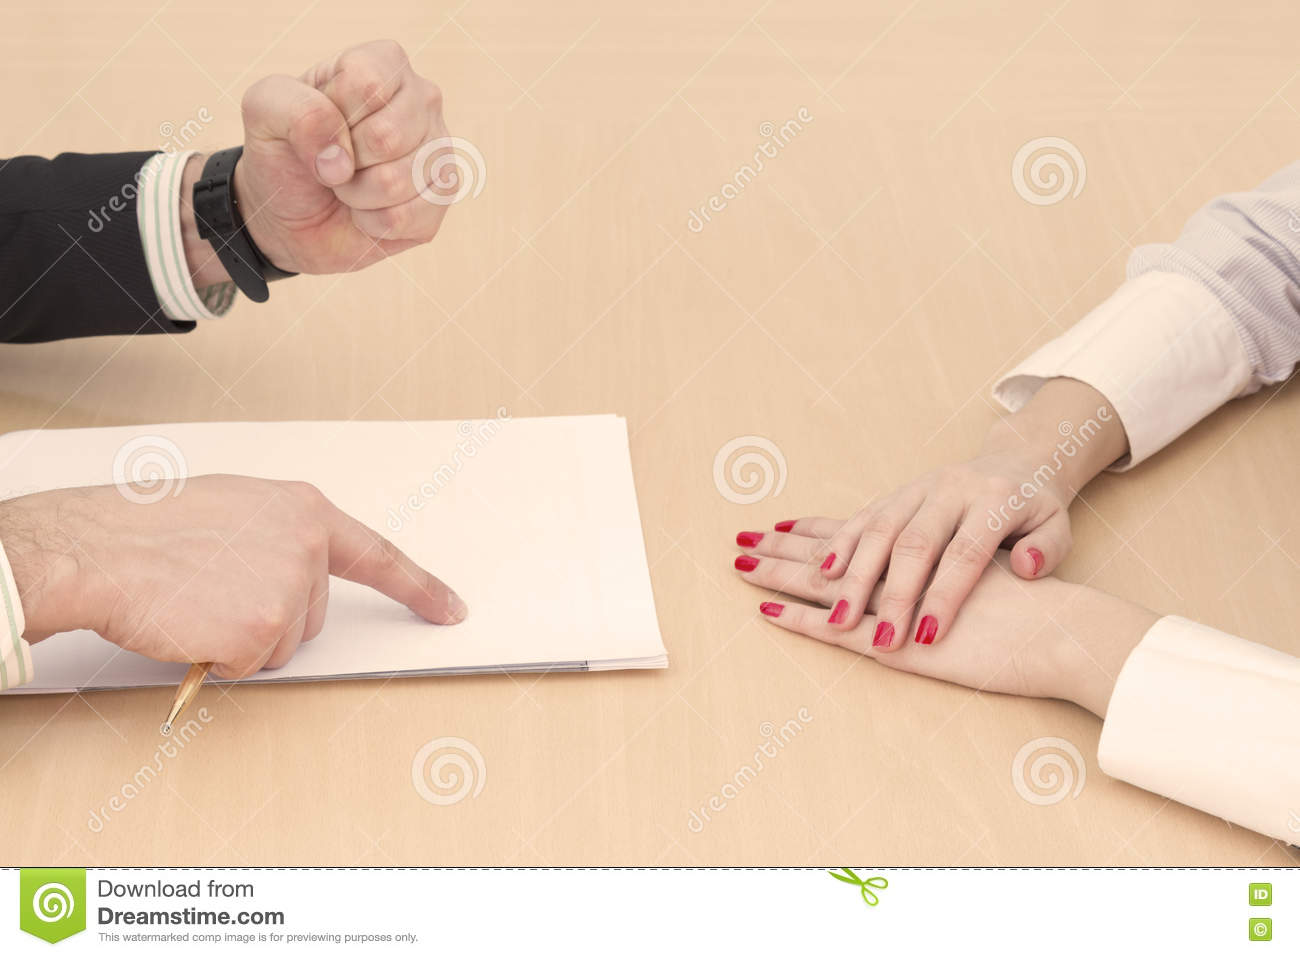 Male and female hands on the table